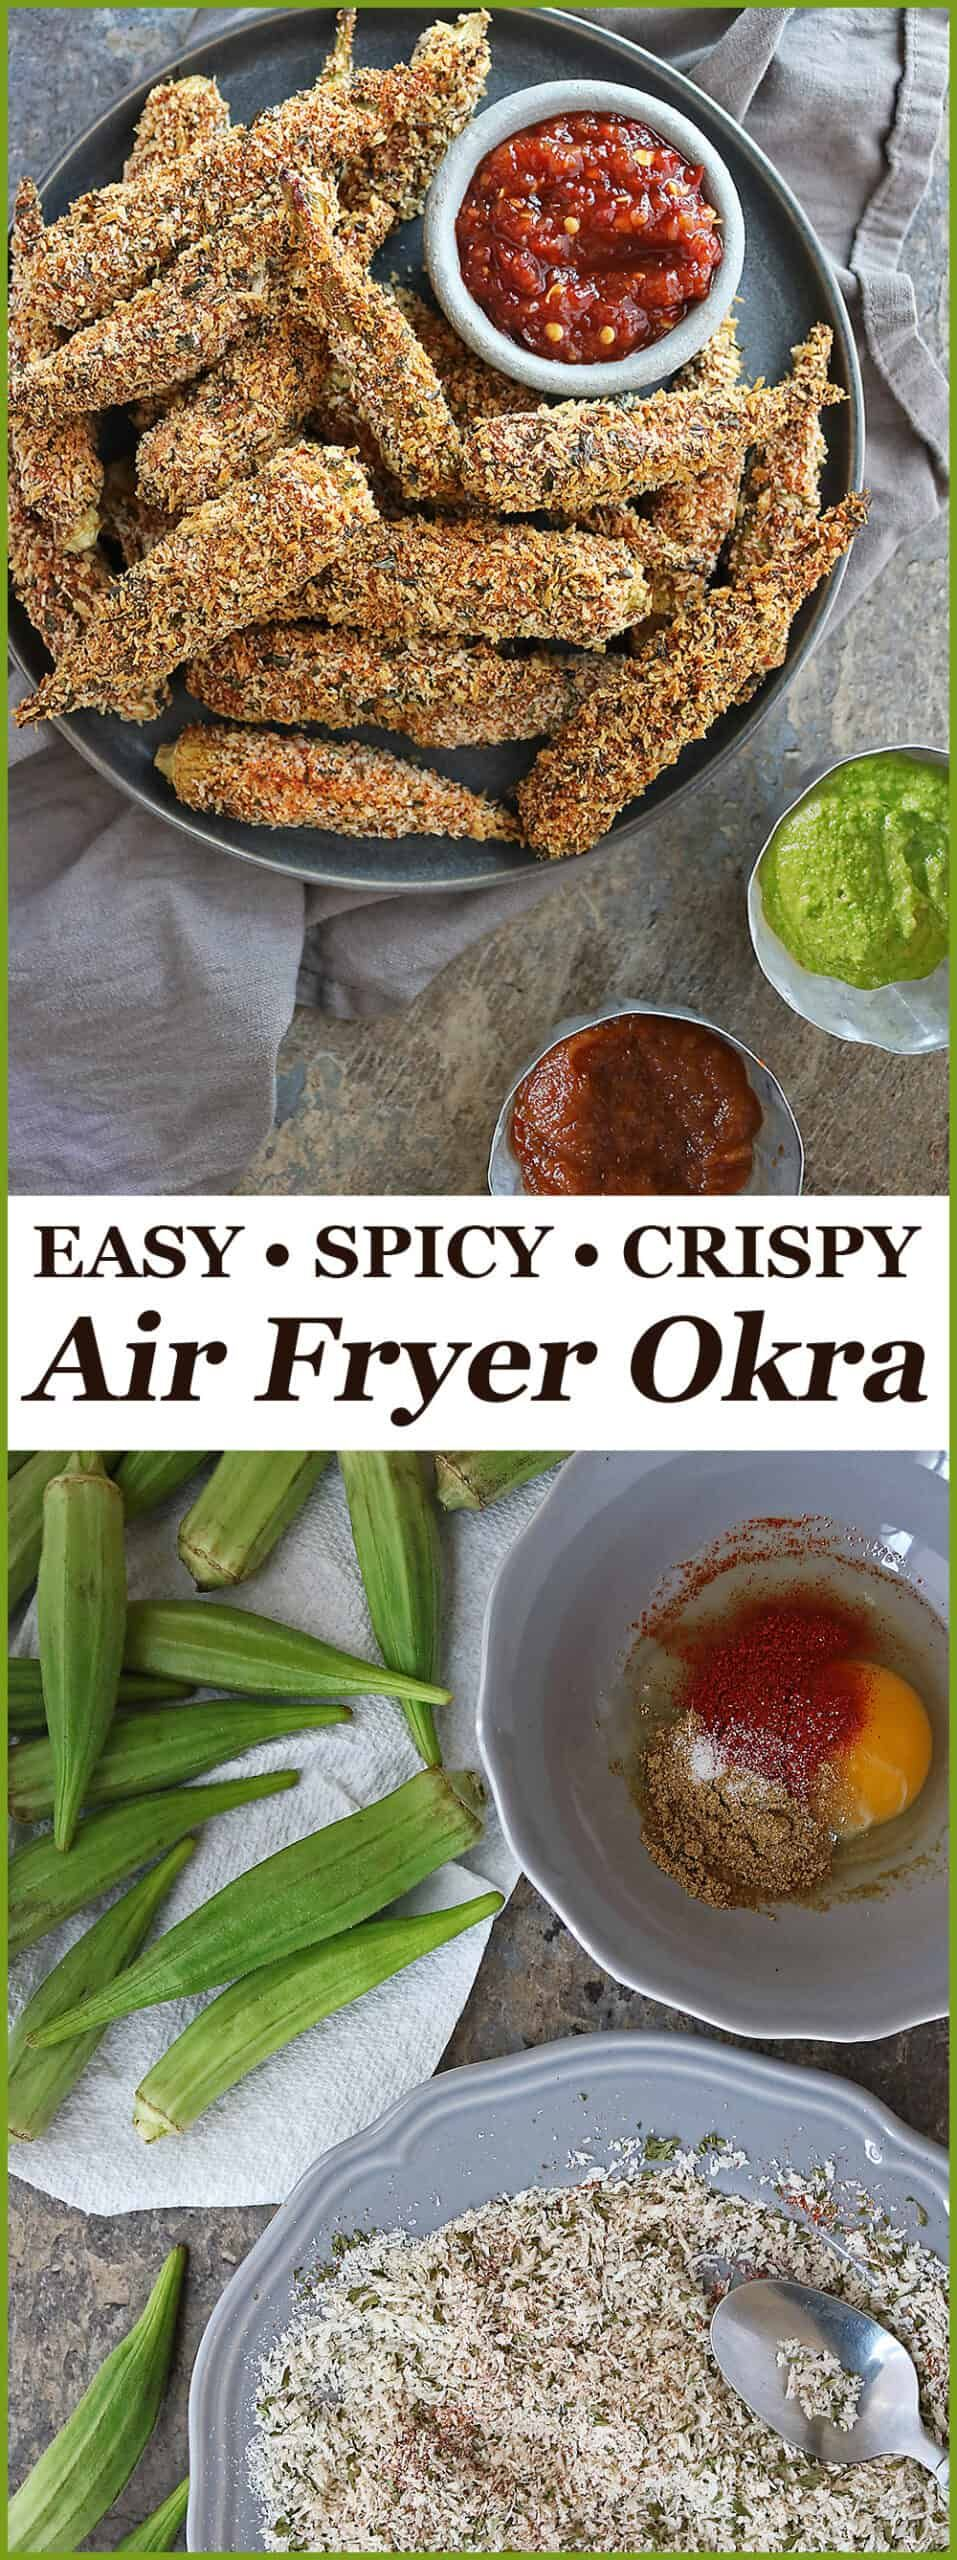 Crispy Spicy Air Fryer Okra Recipe Savory Spin Recipe